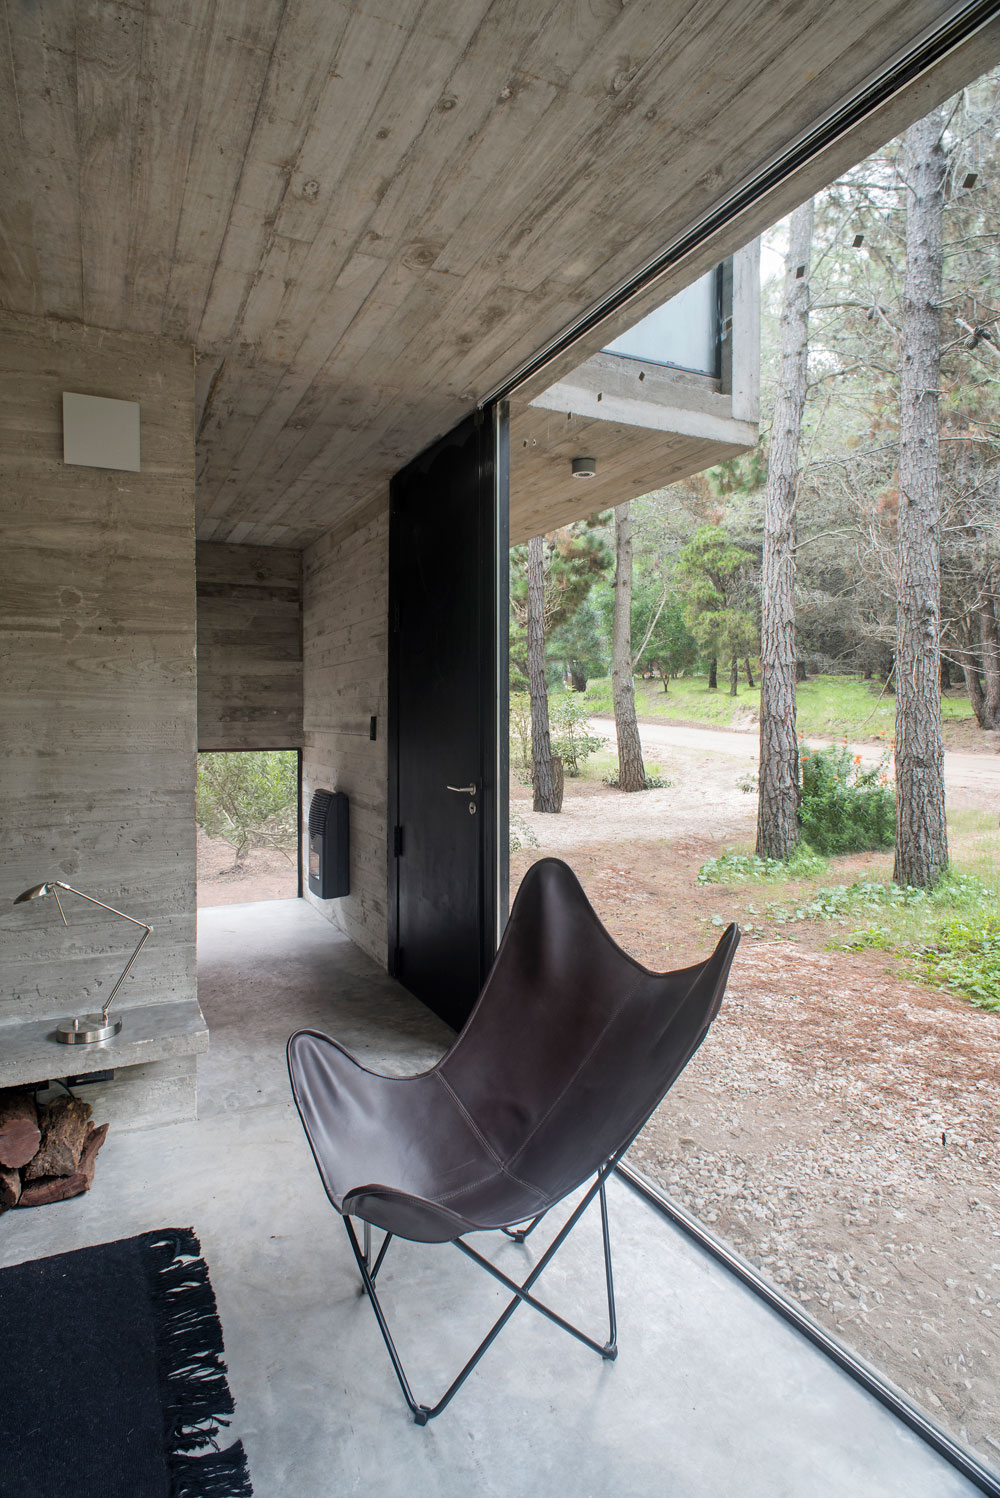 H3 House by Luciano Kruk (11)